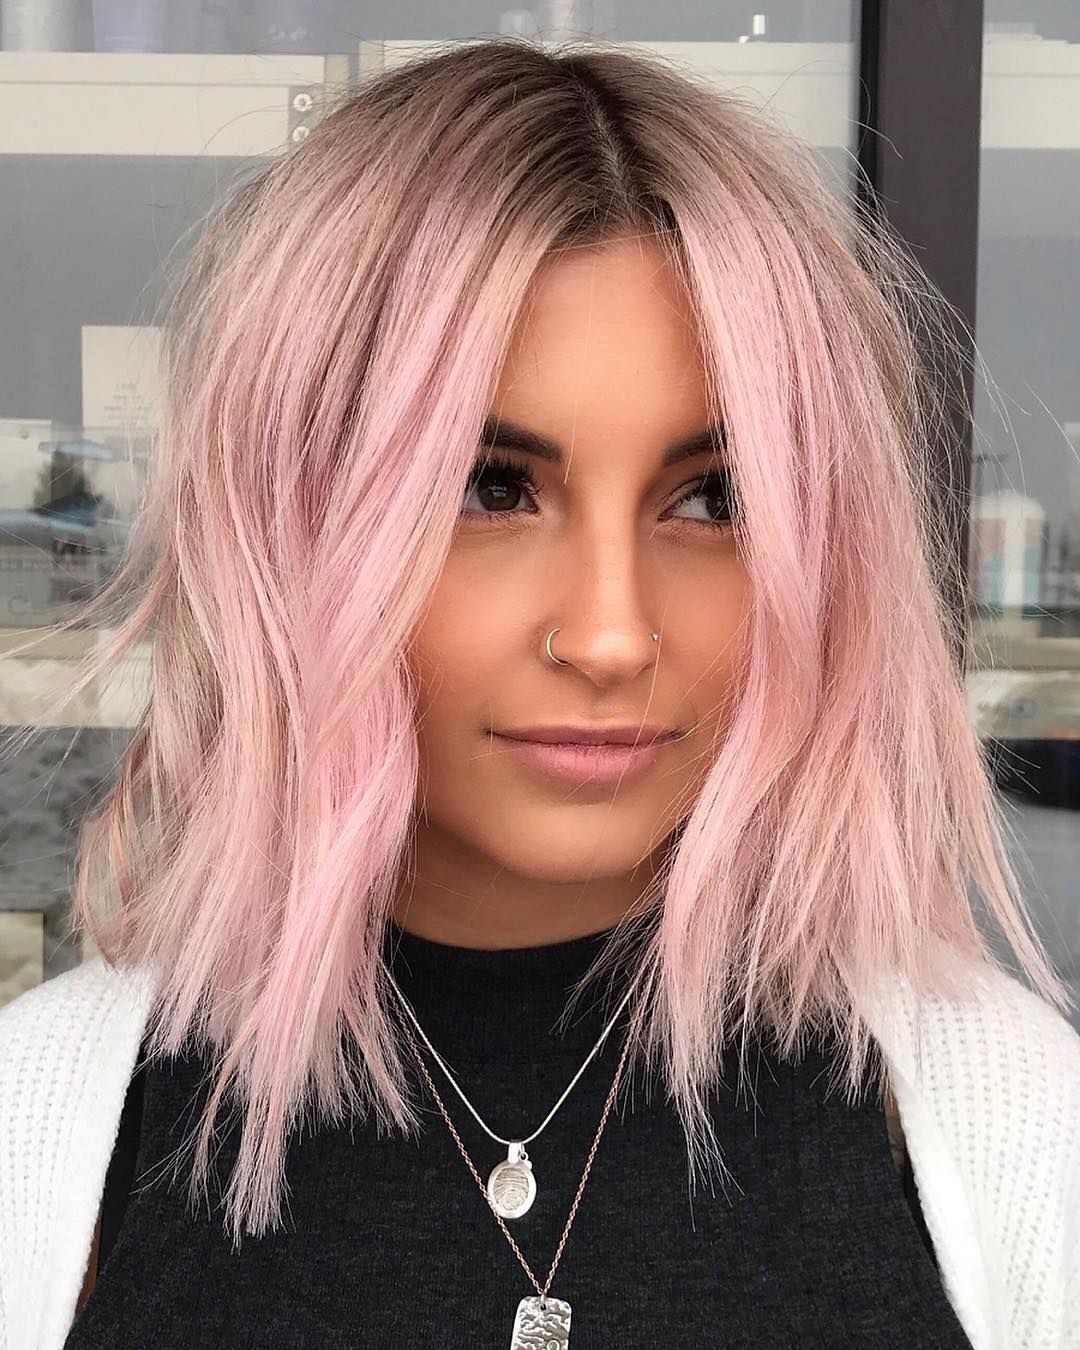 60 Of The Most Stunning Short Hairstyles On Instagram March 2019 Hair Styles Light Pink Hair Pastel Pink Hair Color